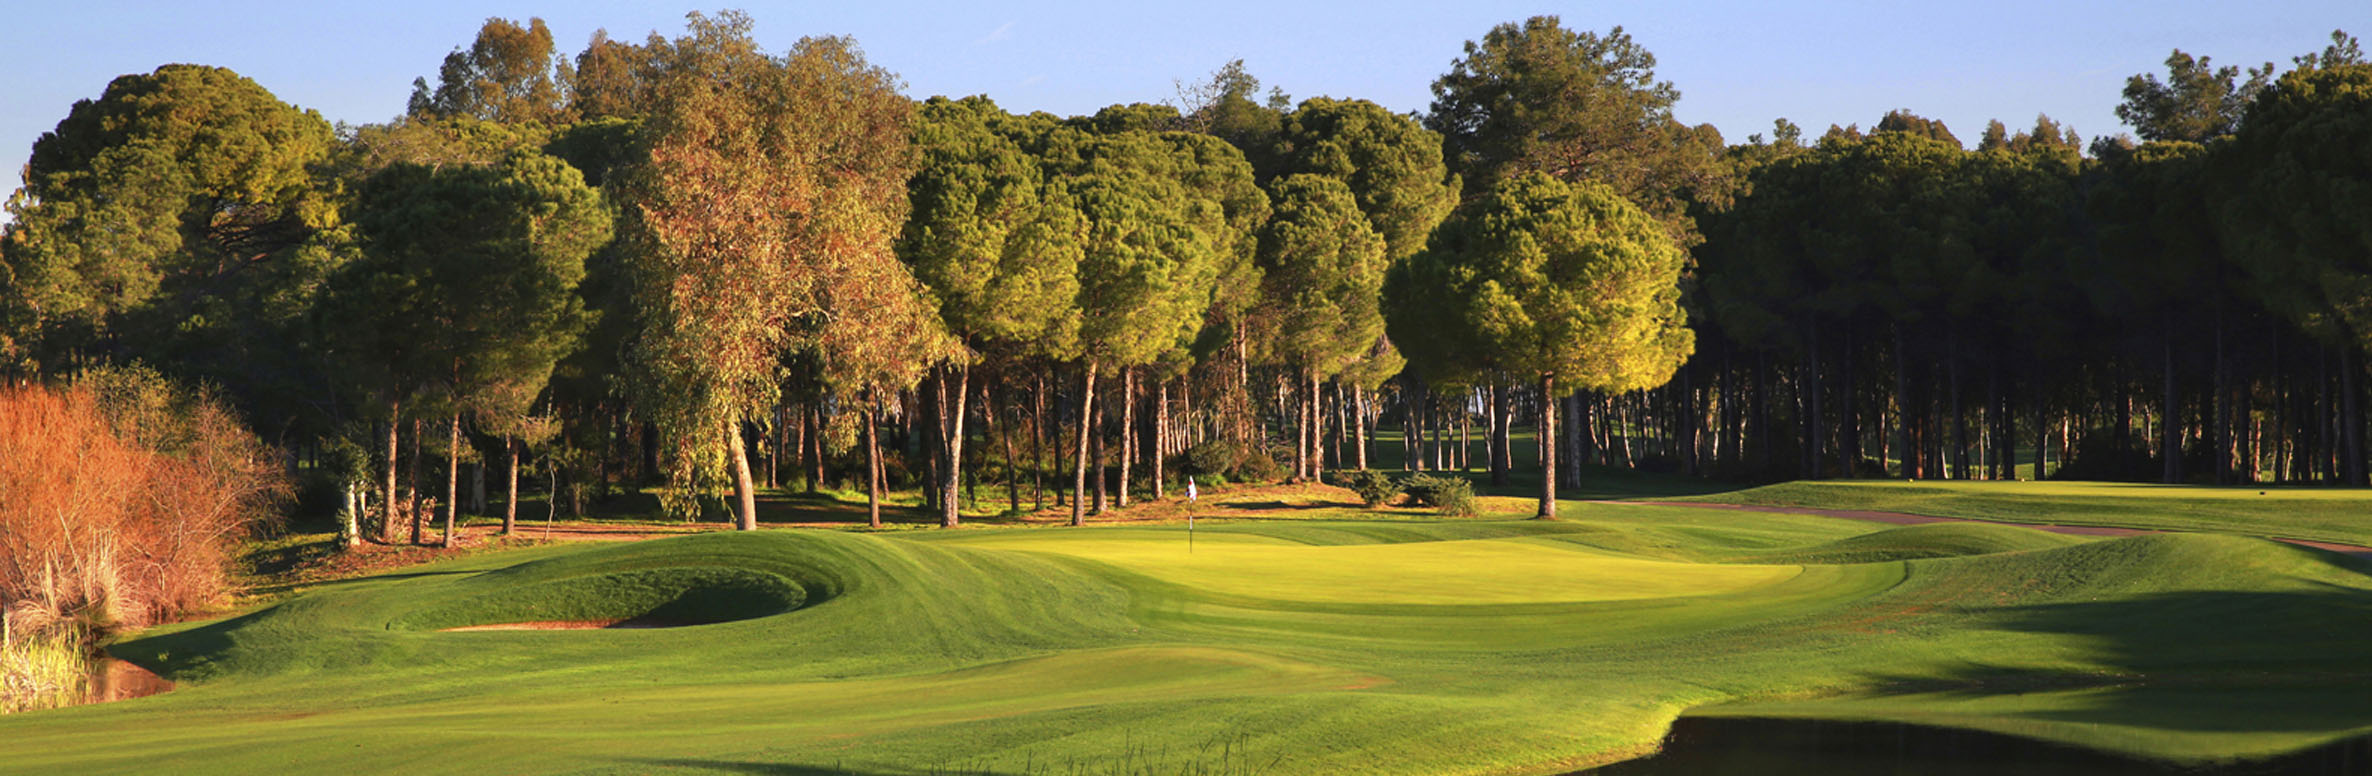 Antalya Golf Club Sultan